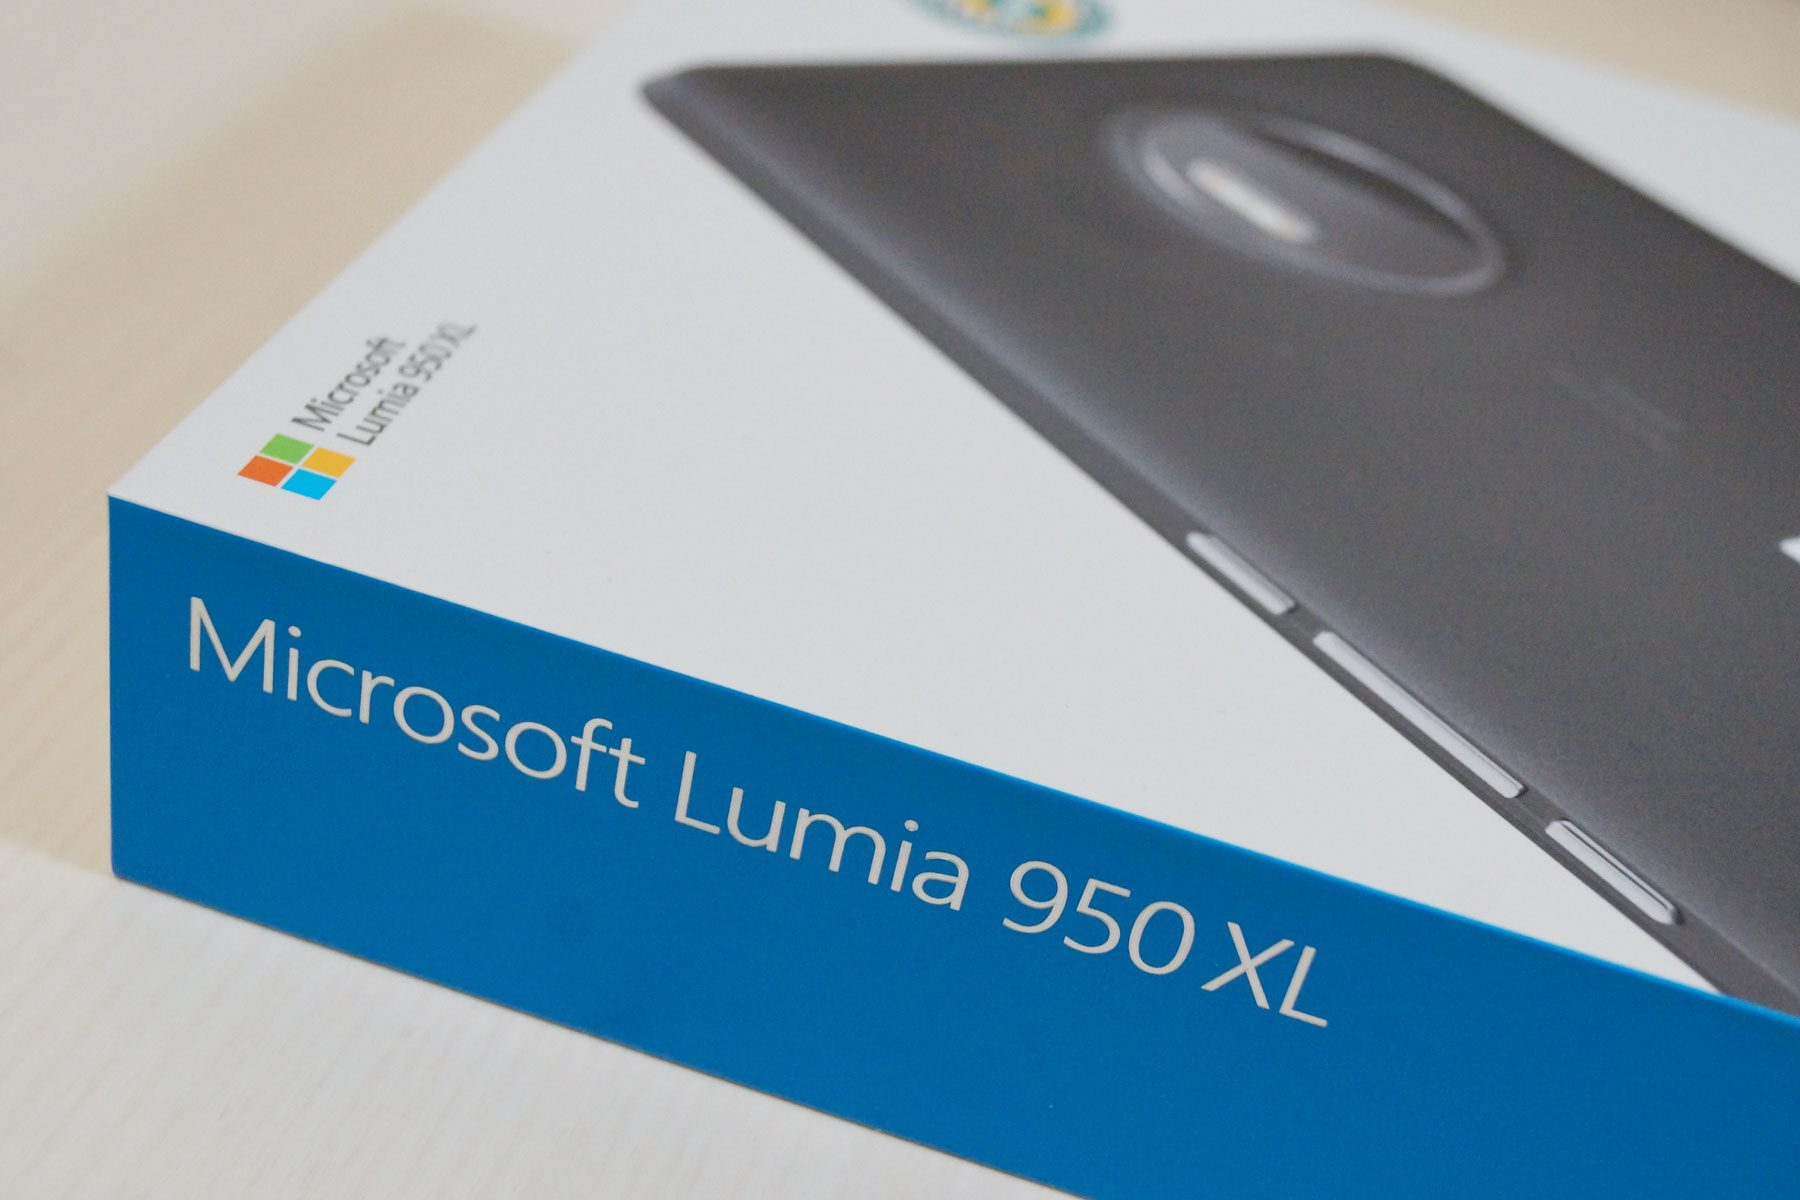 lumia950xl-box